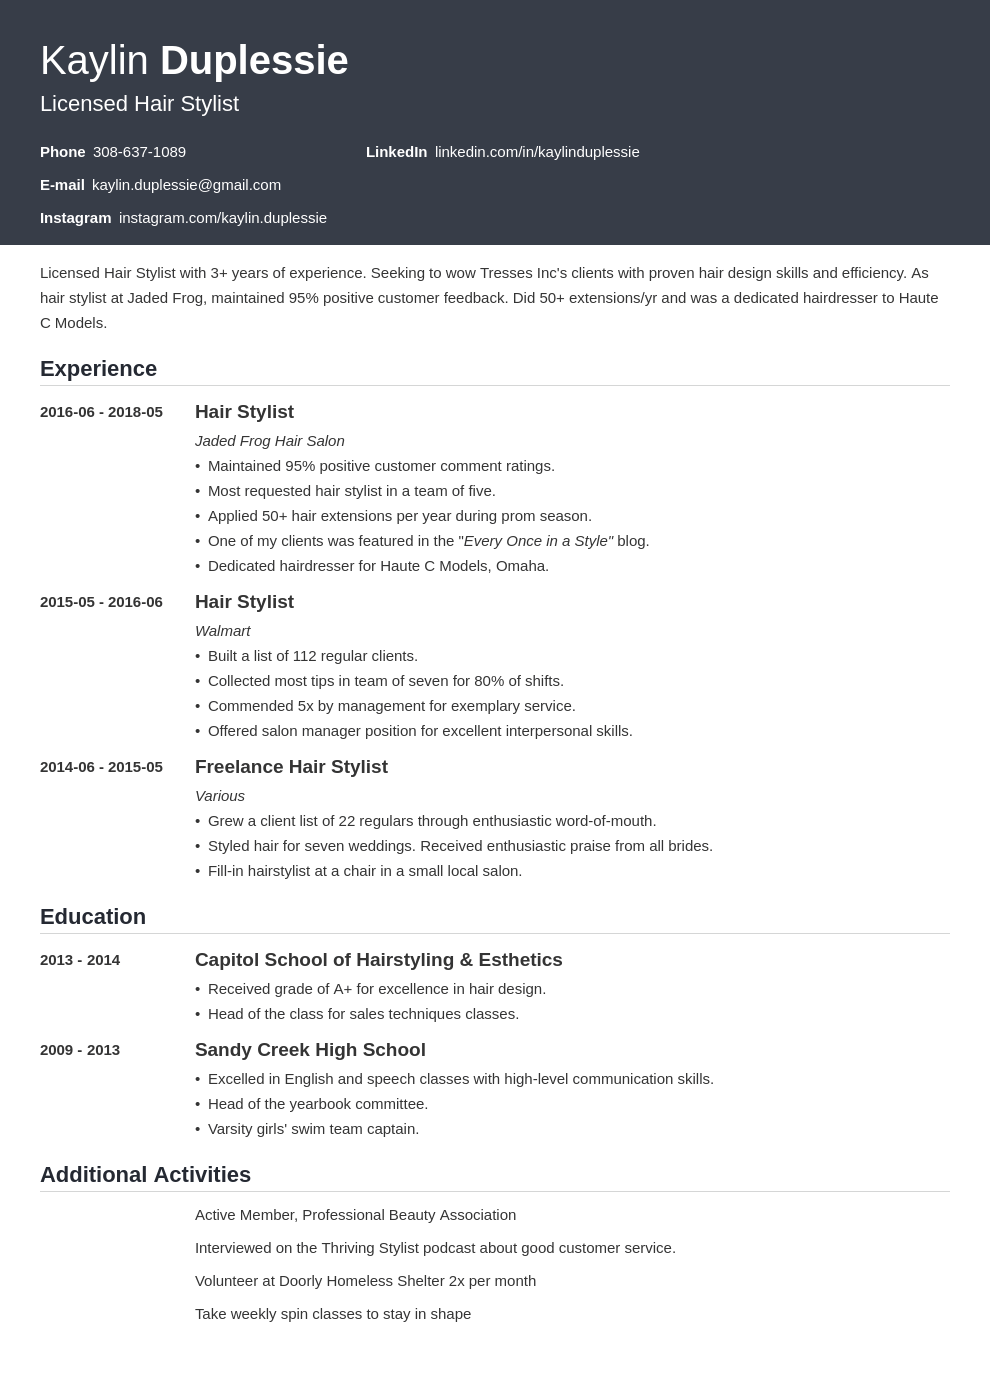 Cover Letter For Hairstylist from cdn-images.zety.com